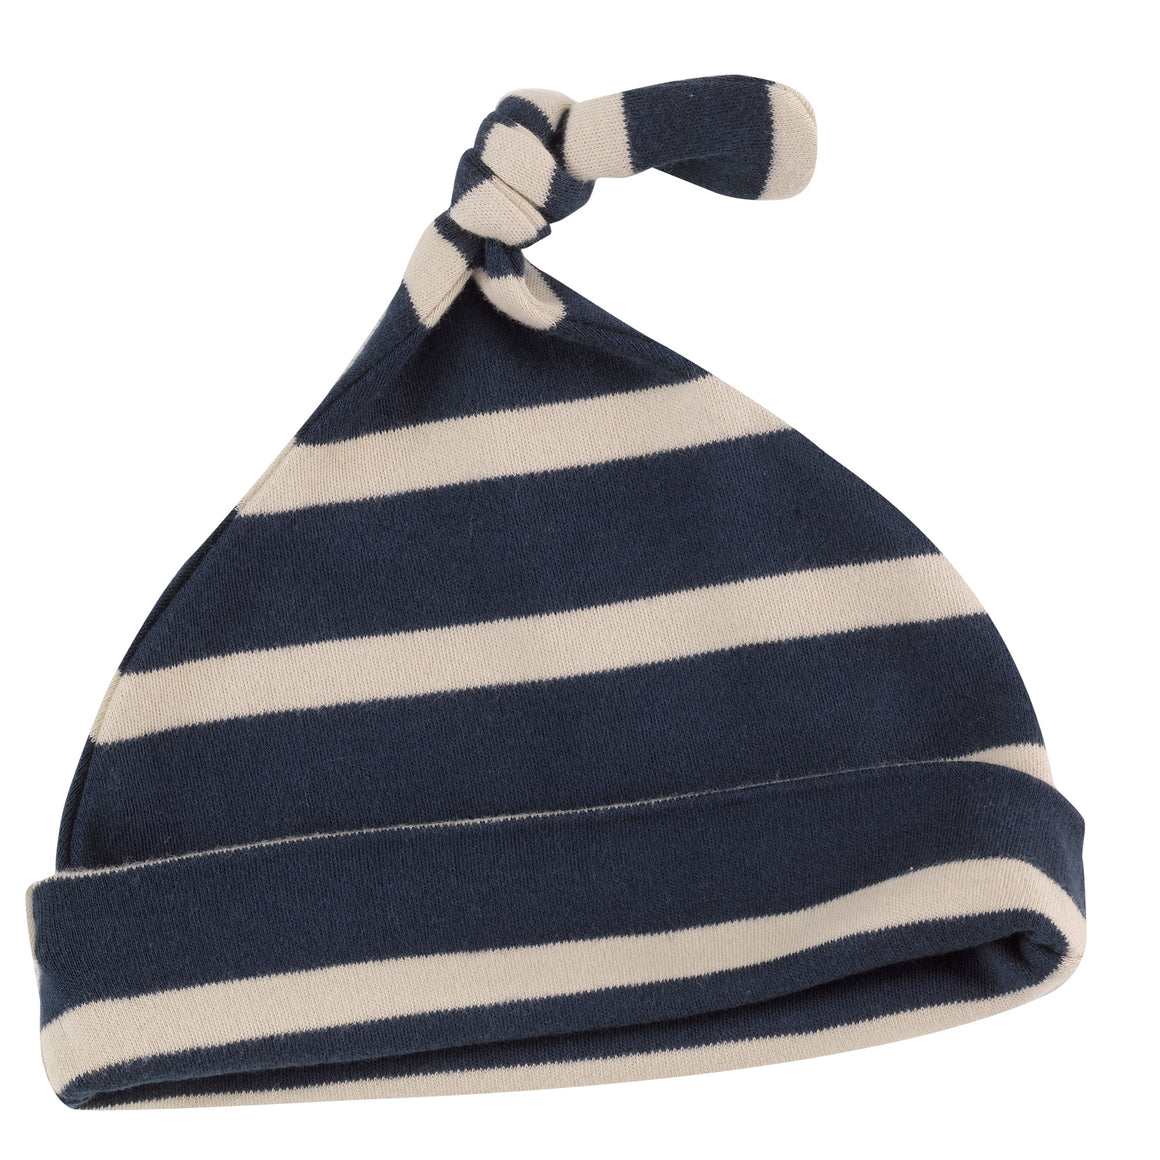 Knotted hat in Ink Blue breton stripe